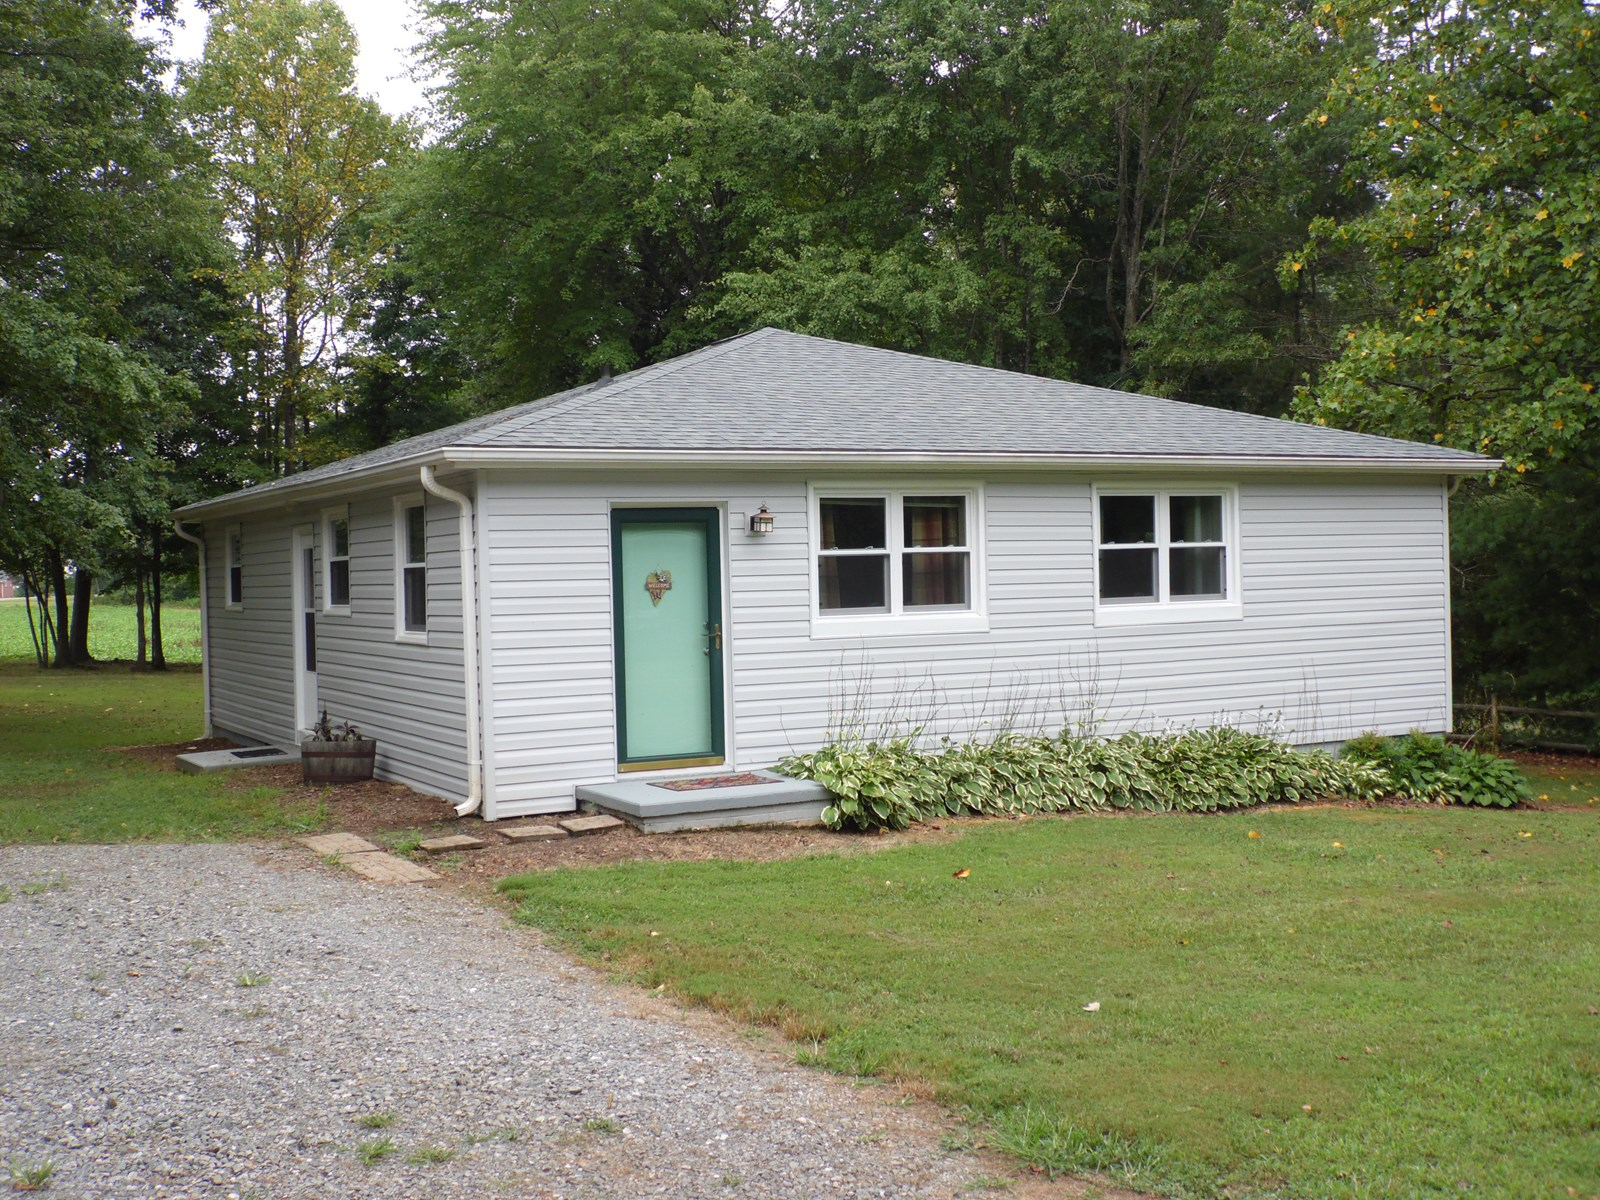 Adorable Home in Hamptonville, NC Close to I-77 and US 421